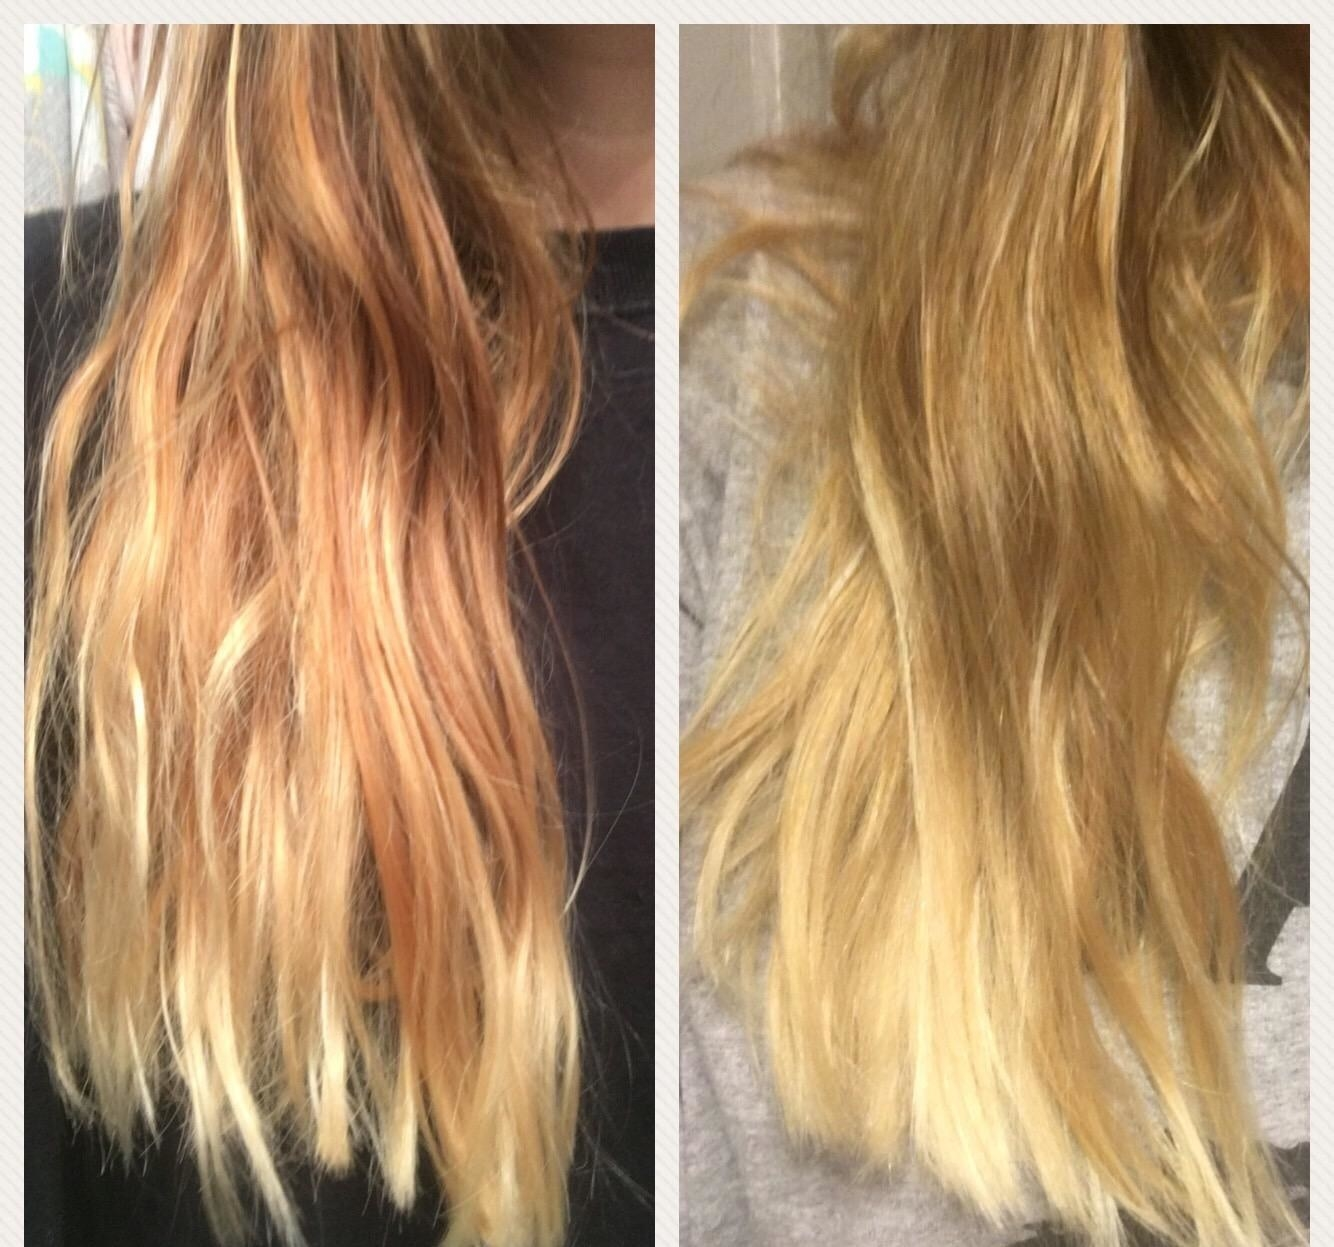 Reviewer before and after showing their hair was less frizzy when they woke up after sleeping on the silk pillowcase